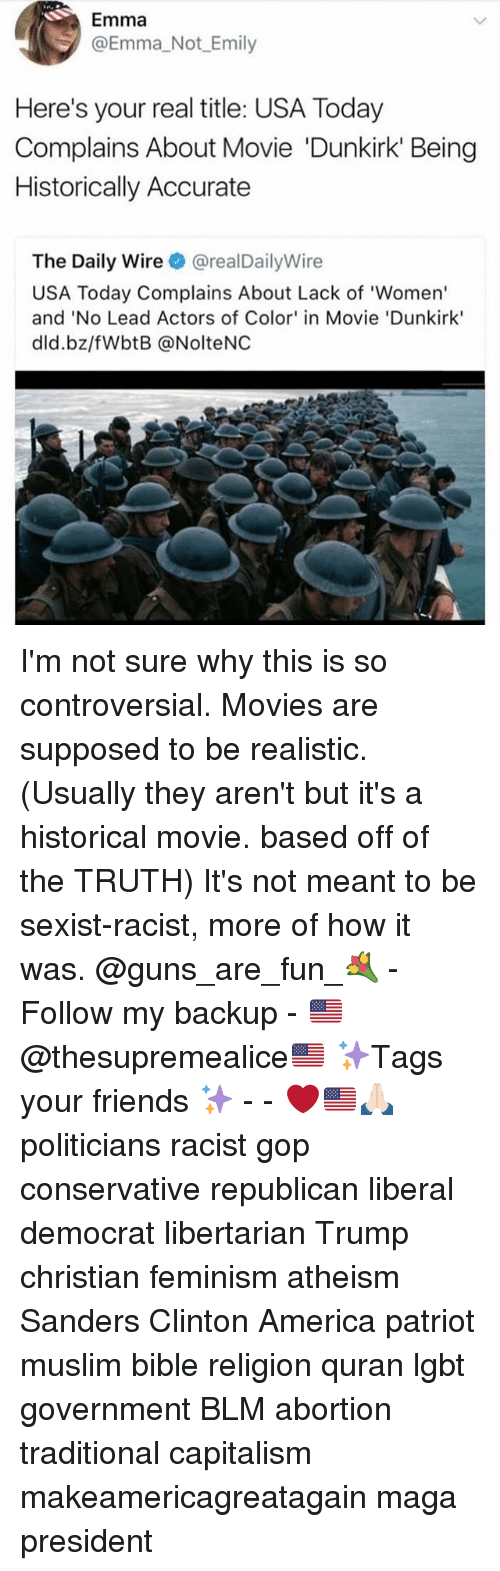 America, Feminism, and Friends: Emma  @Emma Not Emily  Here's your real title: USA Today  Complains About Movie 'Dunkirk Being  Historically Accurate  The Daily Wire @realDailyWire  USA Today Complains About Lack of 'Women'  and 'No Lead Actors of Color' in Movie 'Dunkirk'  dld.bz/fWbtB @NolteNC I'm not sure why this is so controversial. Movies are supposed to be realistic. (Usually they aren't but it's a historical movie. based off of the TRUTH) It's not meant to be sexist-racist, more of how it was. @guns_are_fun_💐 - Follow my backup - 🇺🇸 @thesupremealice🇺🇸 ✨Tags your friends ✨ - - ❤️🇺🇸🙏🏻 politicians racist gop conservative republican liberal democrat libertarian Trump christian feminism atheism Sanders Clinton America patriot muslim bible religion quran lgbt government BLM abortion traditional capitalism makeamericagreatagain maga president